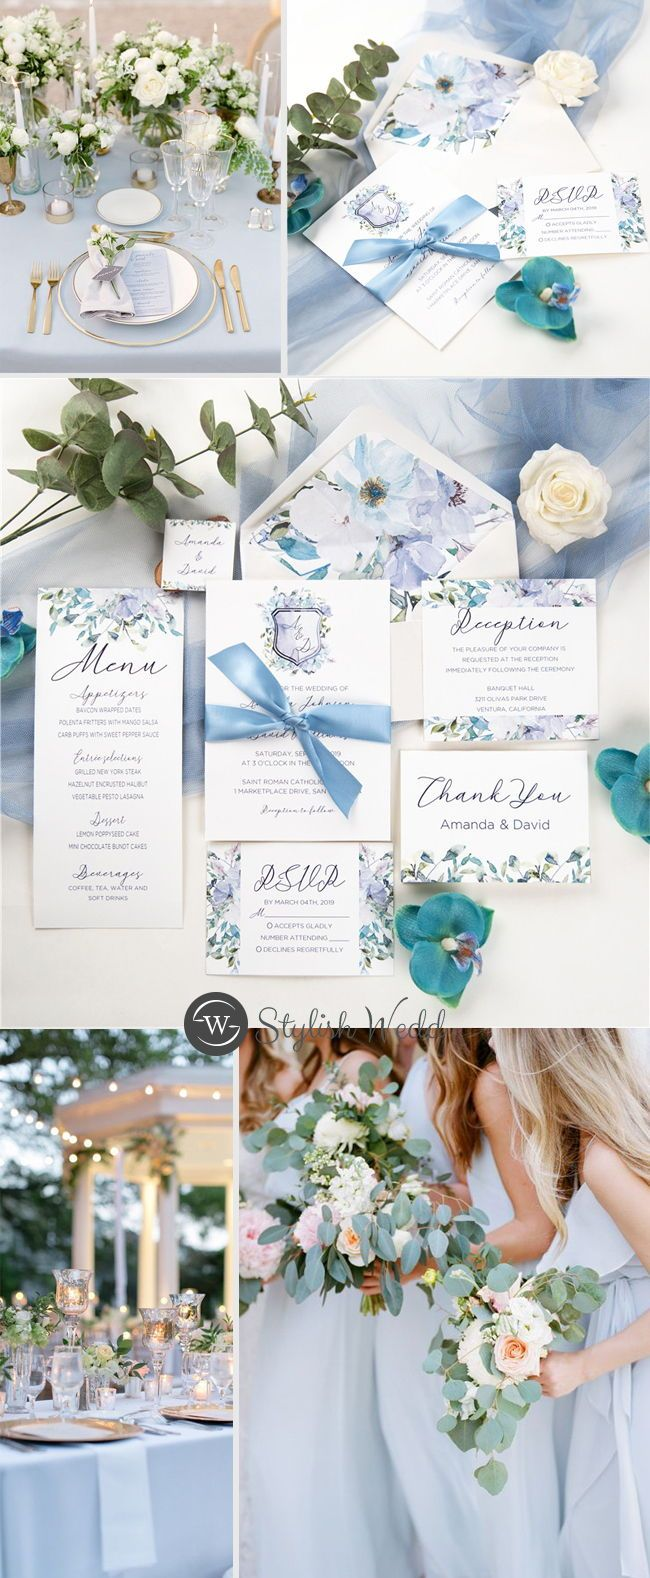 french blue and periwinkle watercolor #wedding #weddinginvitations#stylishwedd #stylishweddinvitations